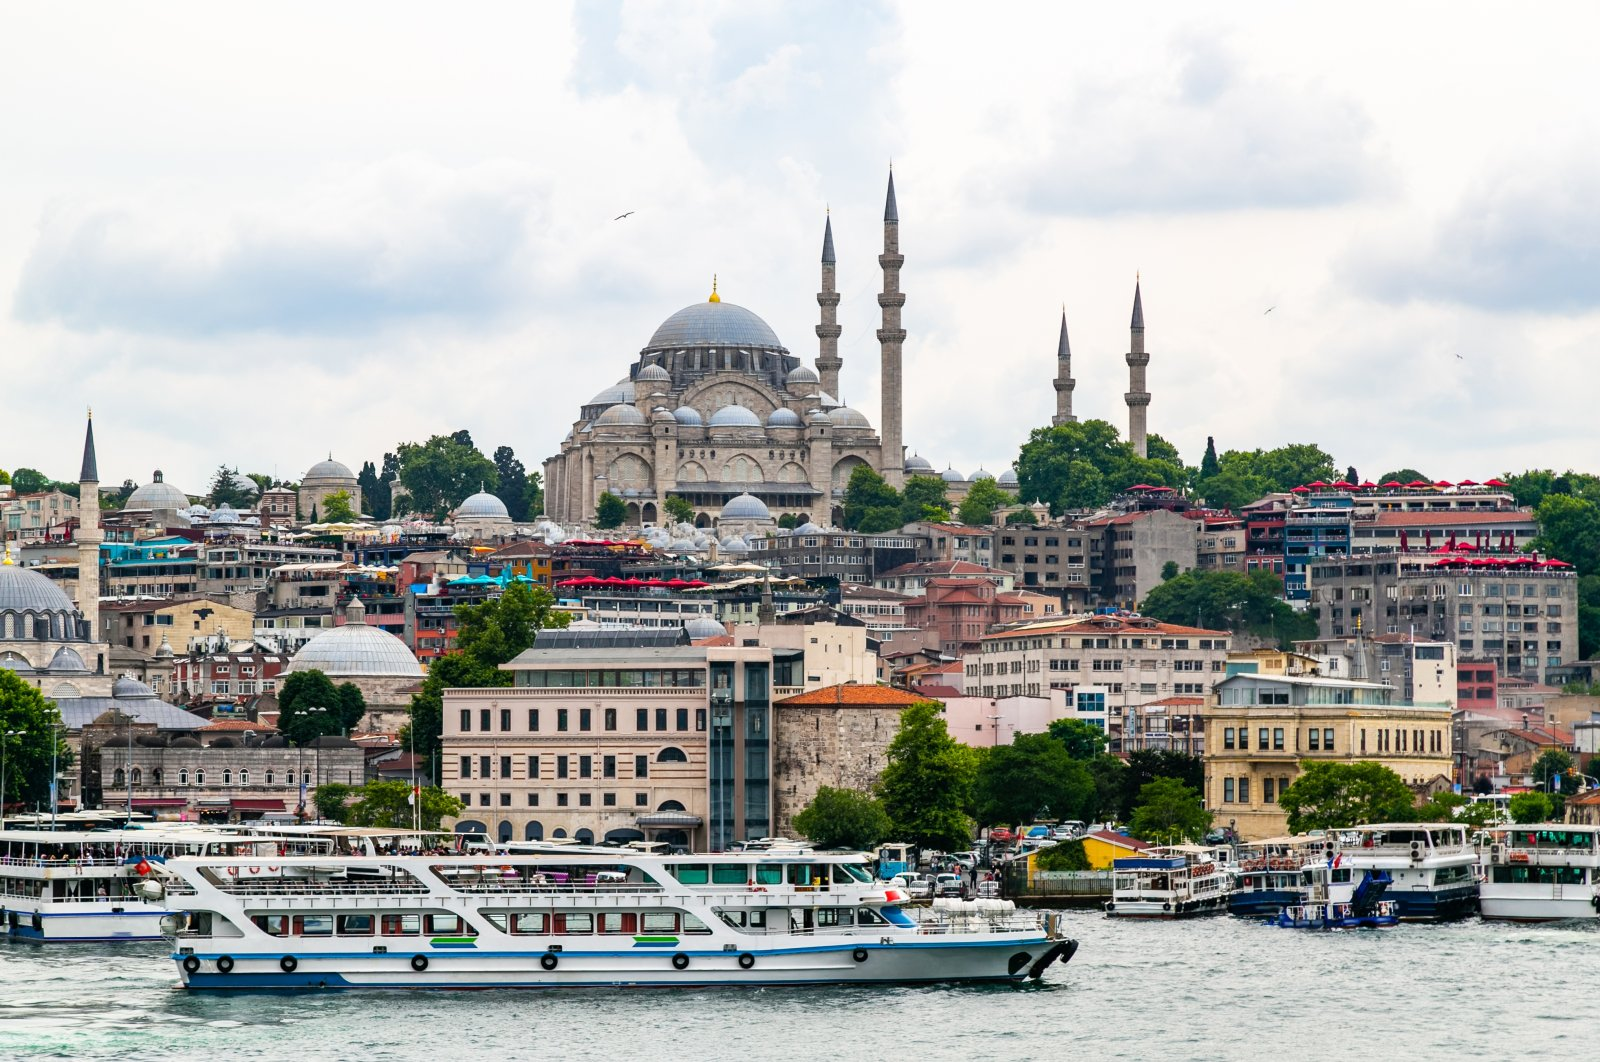 A view of the Istanbul cityscape with boats and Süleymaniye Mosque in the background. (Shutterstock Photo)